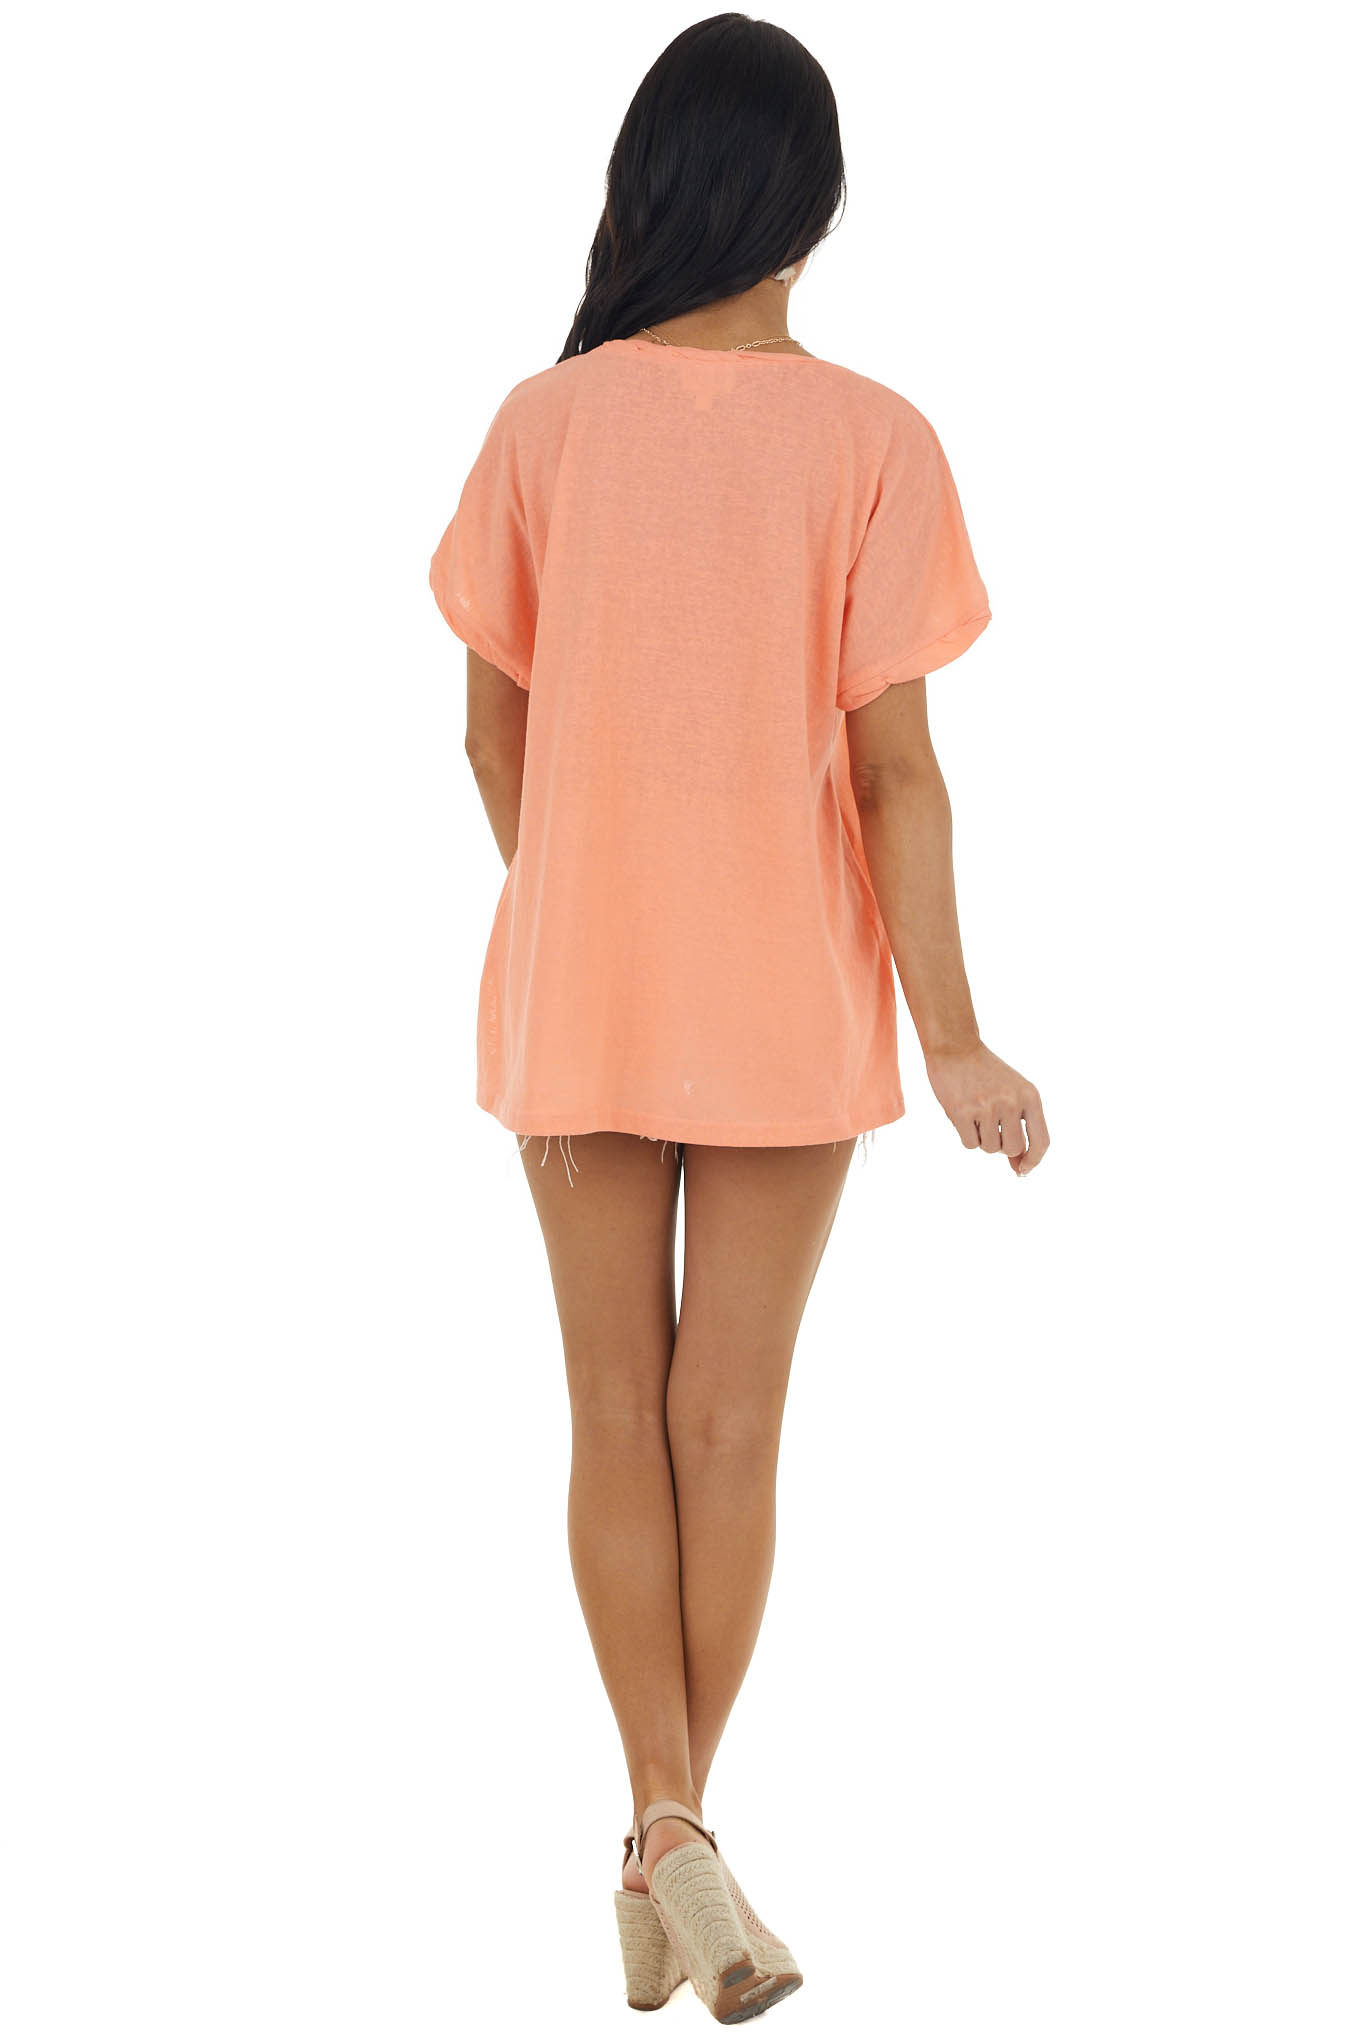 Deep Peach Knit Top with Twisted Neck and Cuff